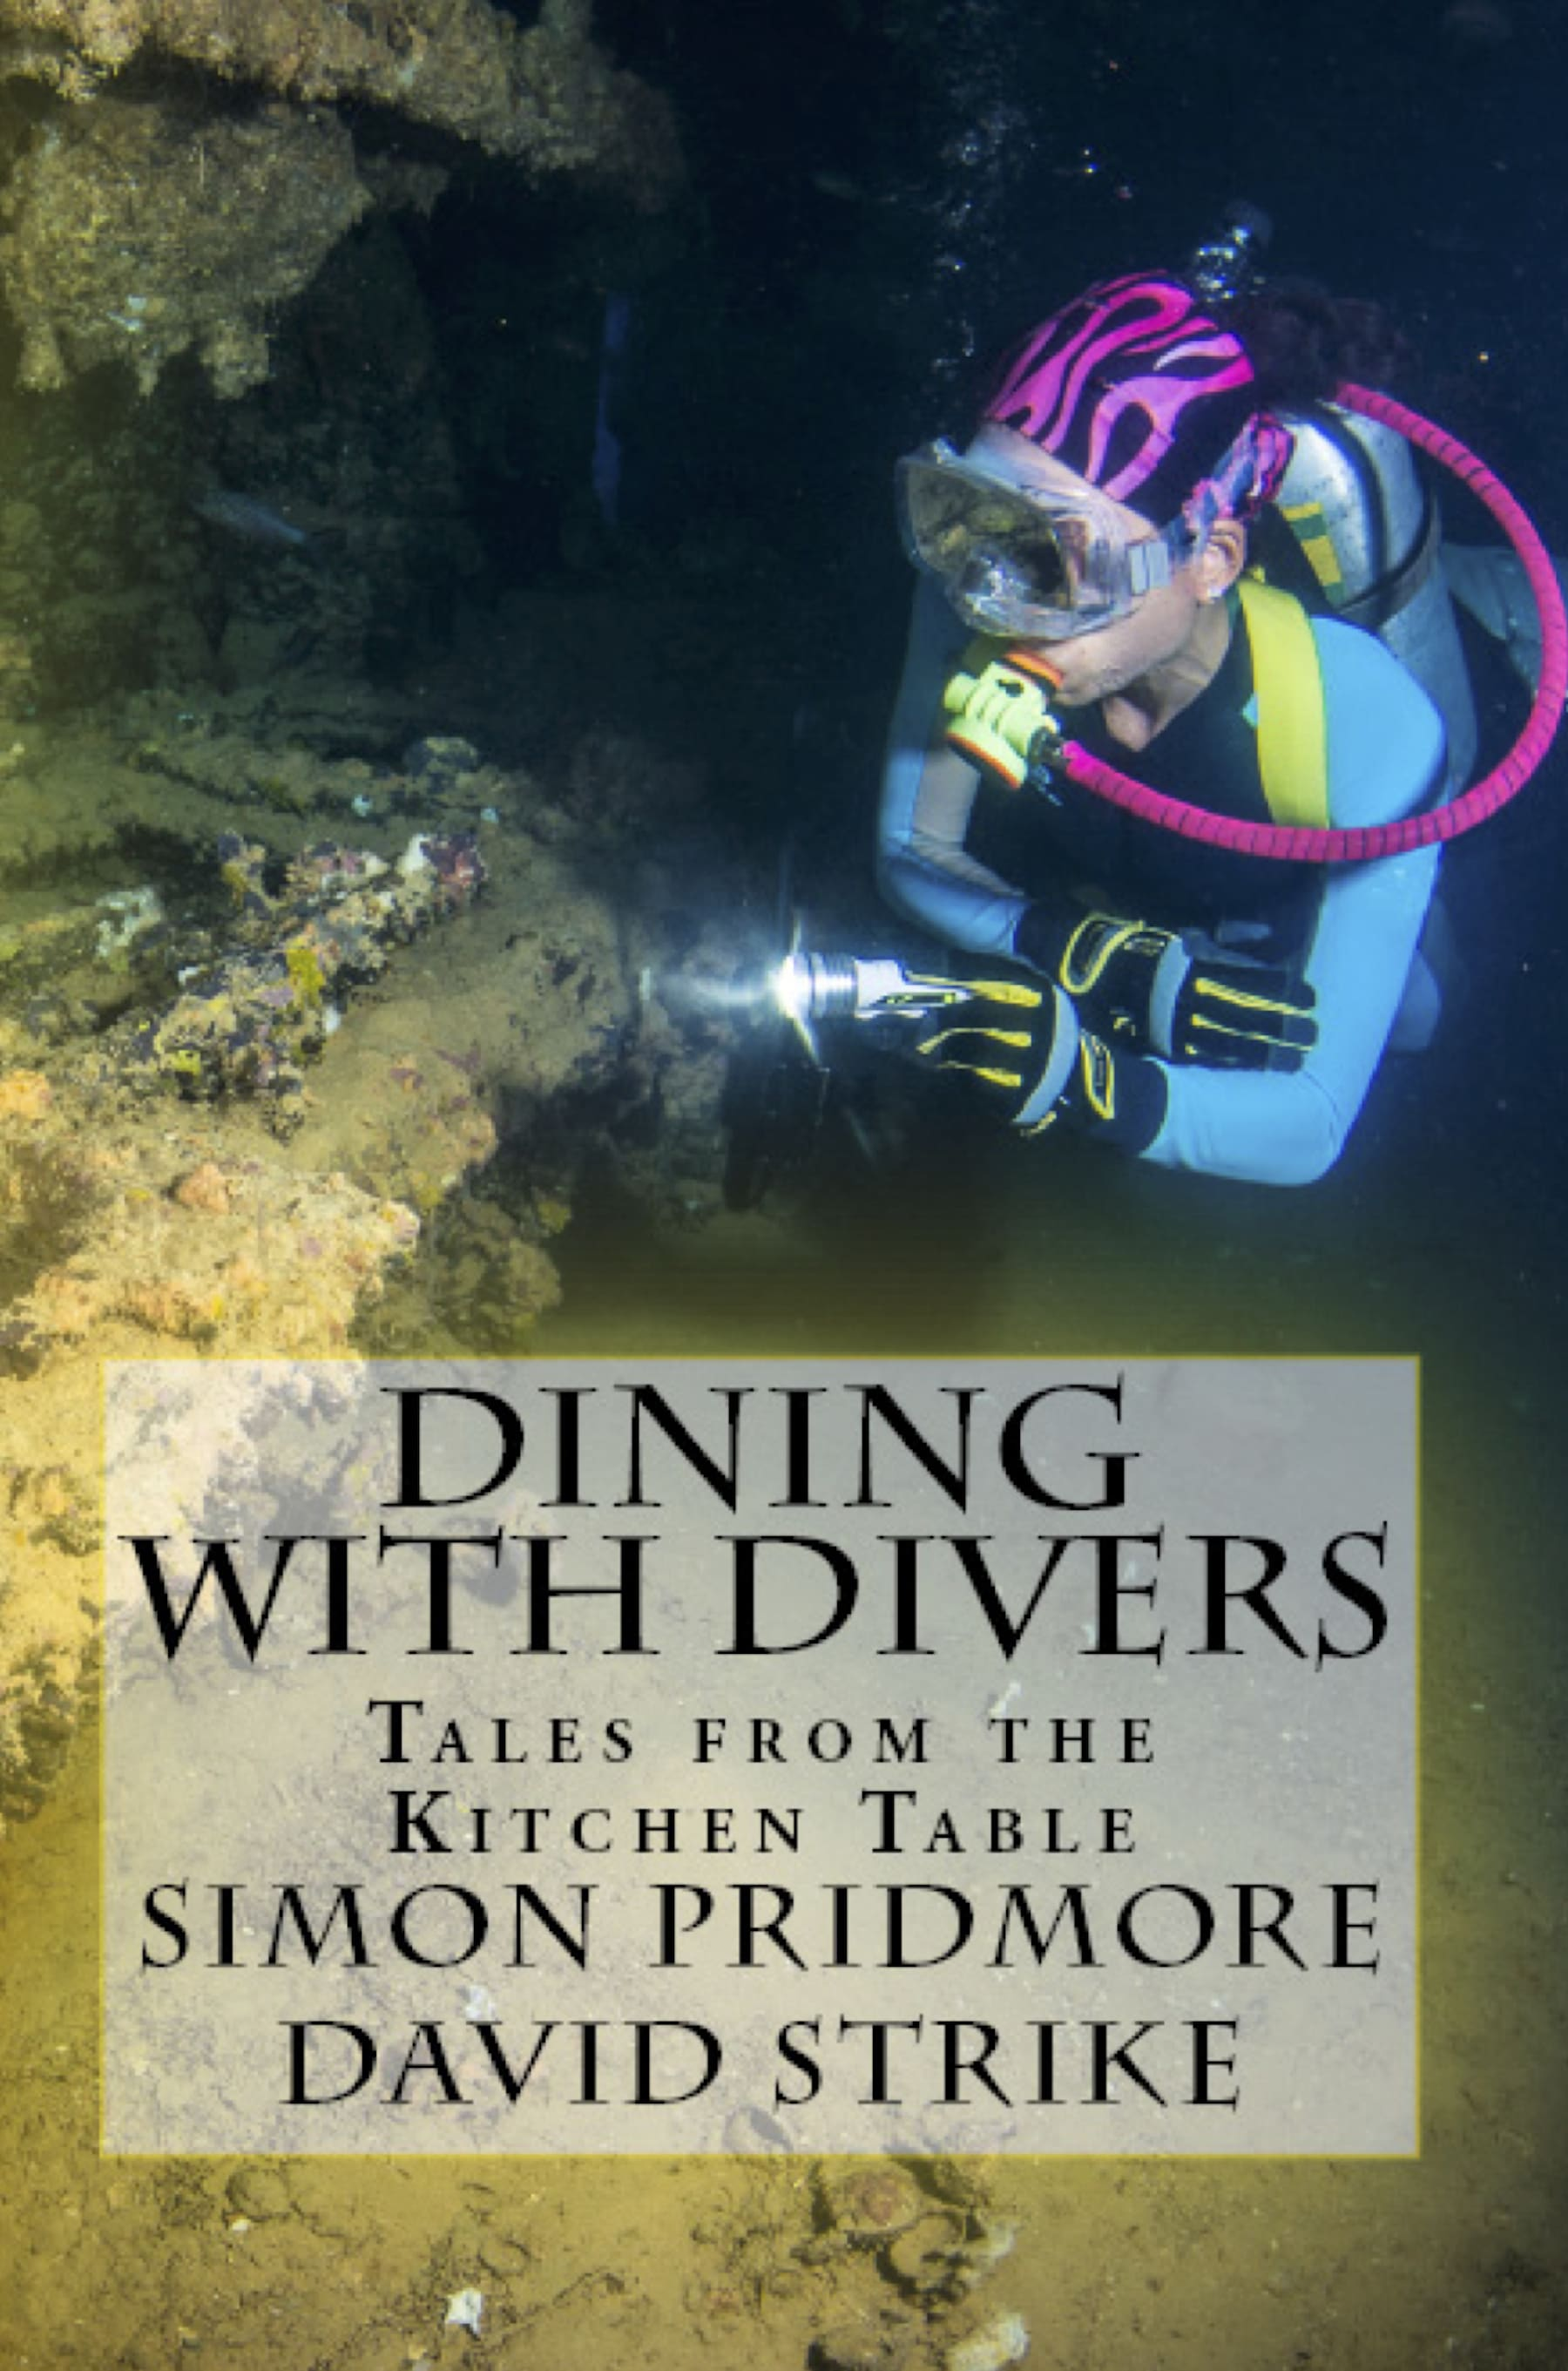 New 'Dining With Divers' Cookbook Just Published